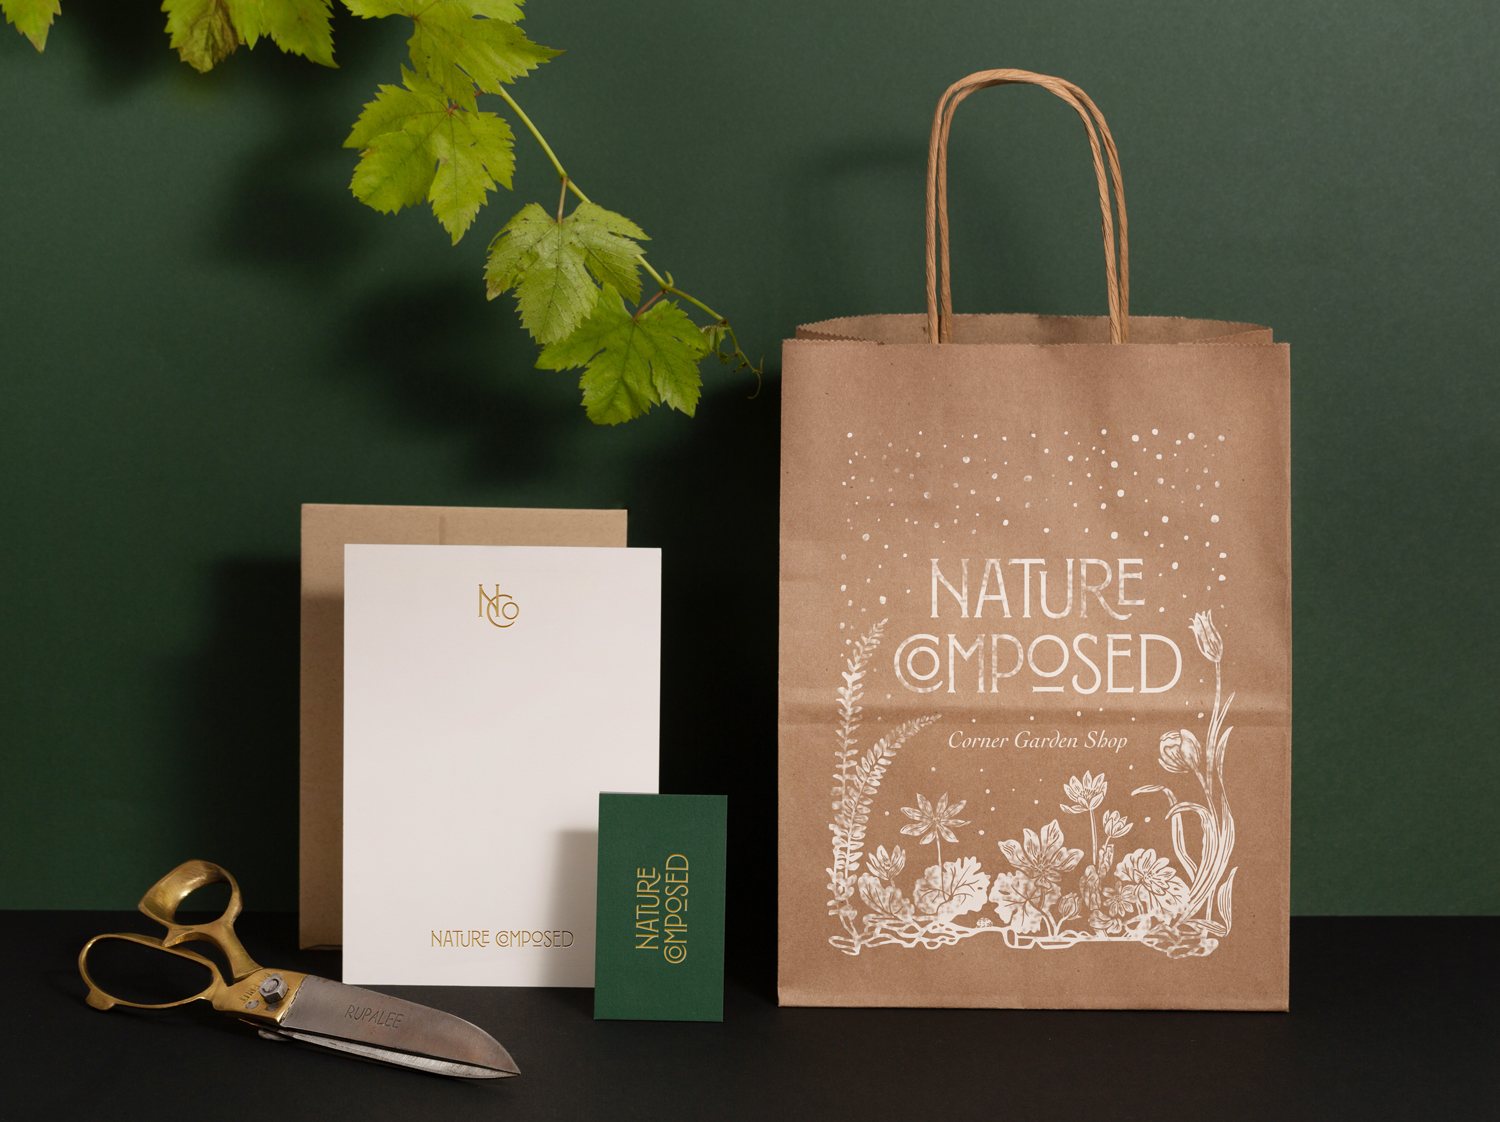 Nature Composed brand identity by Shoppe Theory. Photography by Anna Wu.